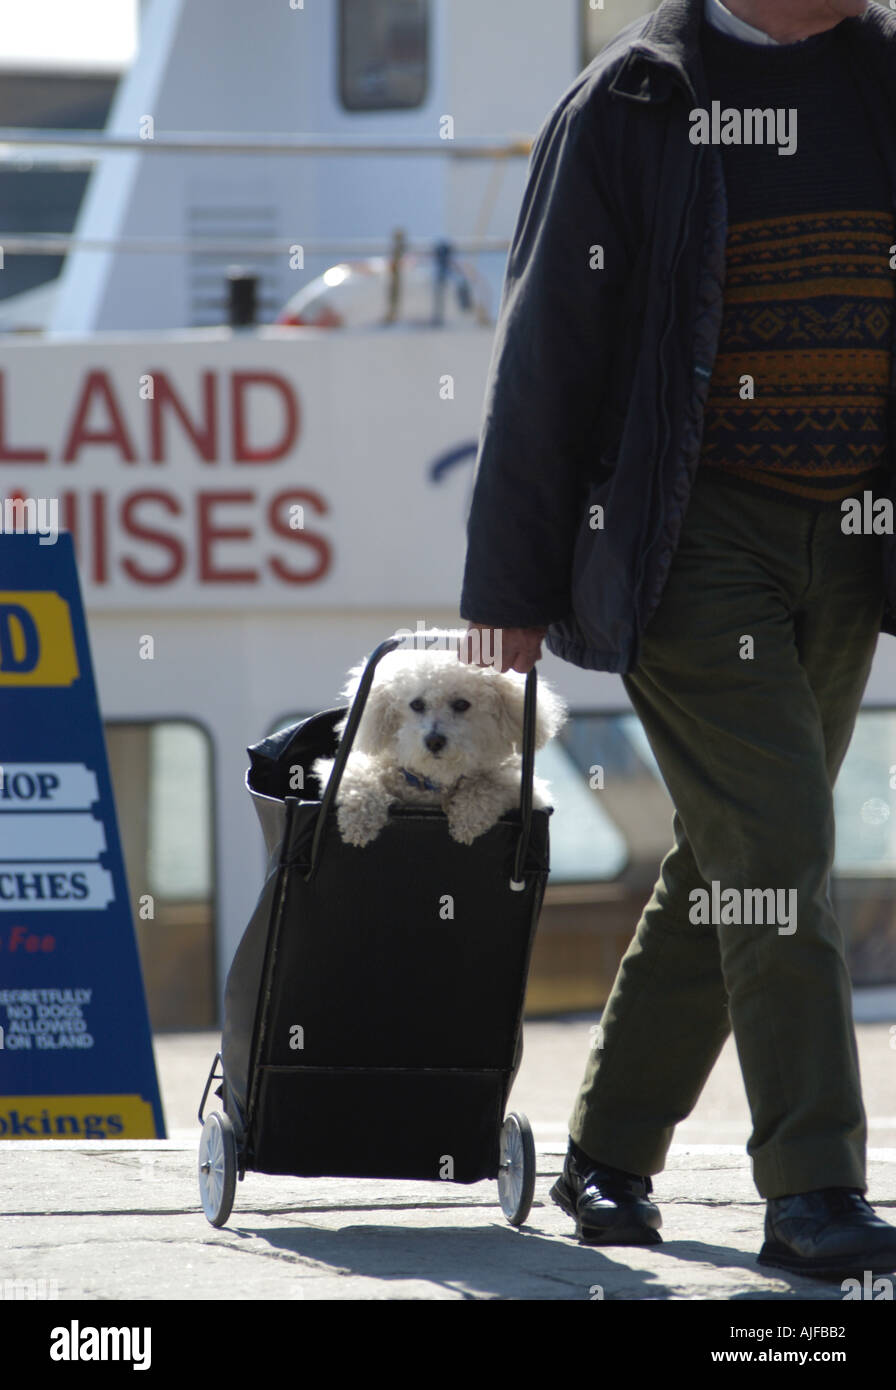 Lazy Dog being carried in shopping trolley Stock Photo: 1244081 - Alamy